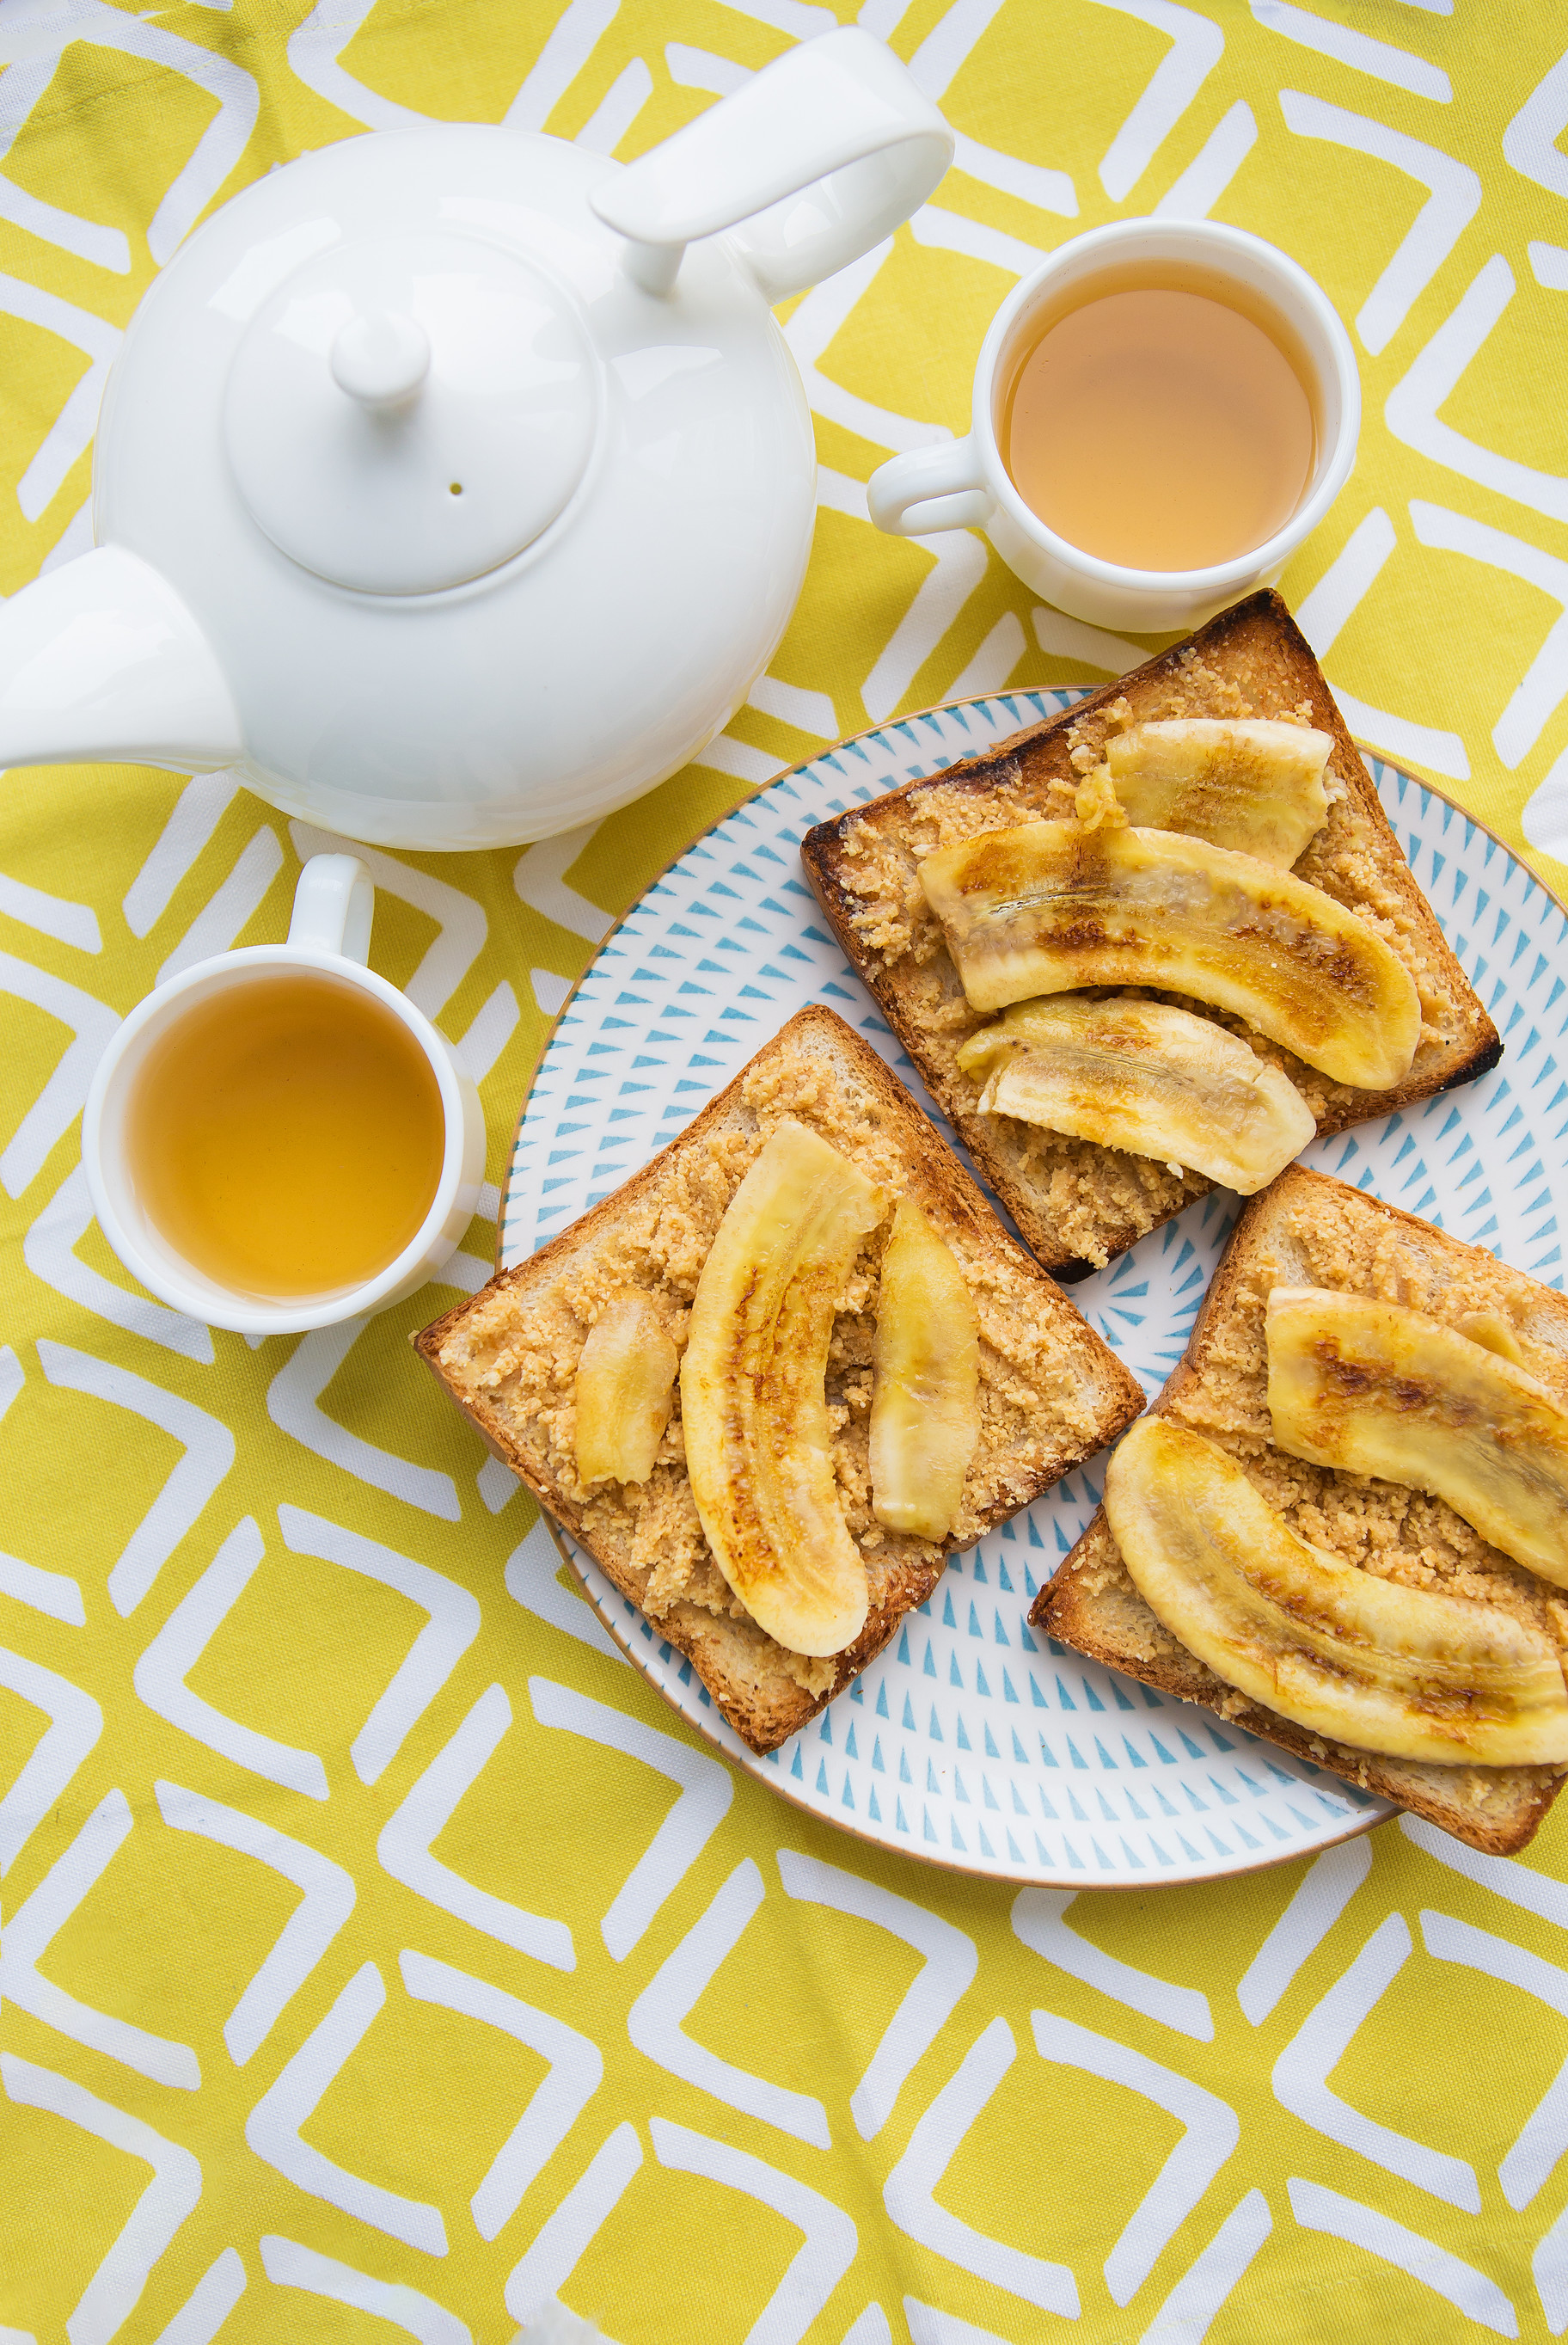 Toast with peanut butter and banana (Credit: Ingimage)